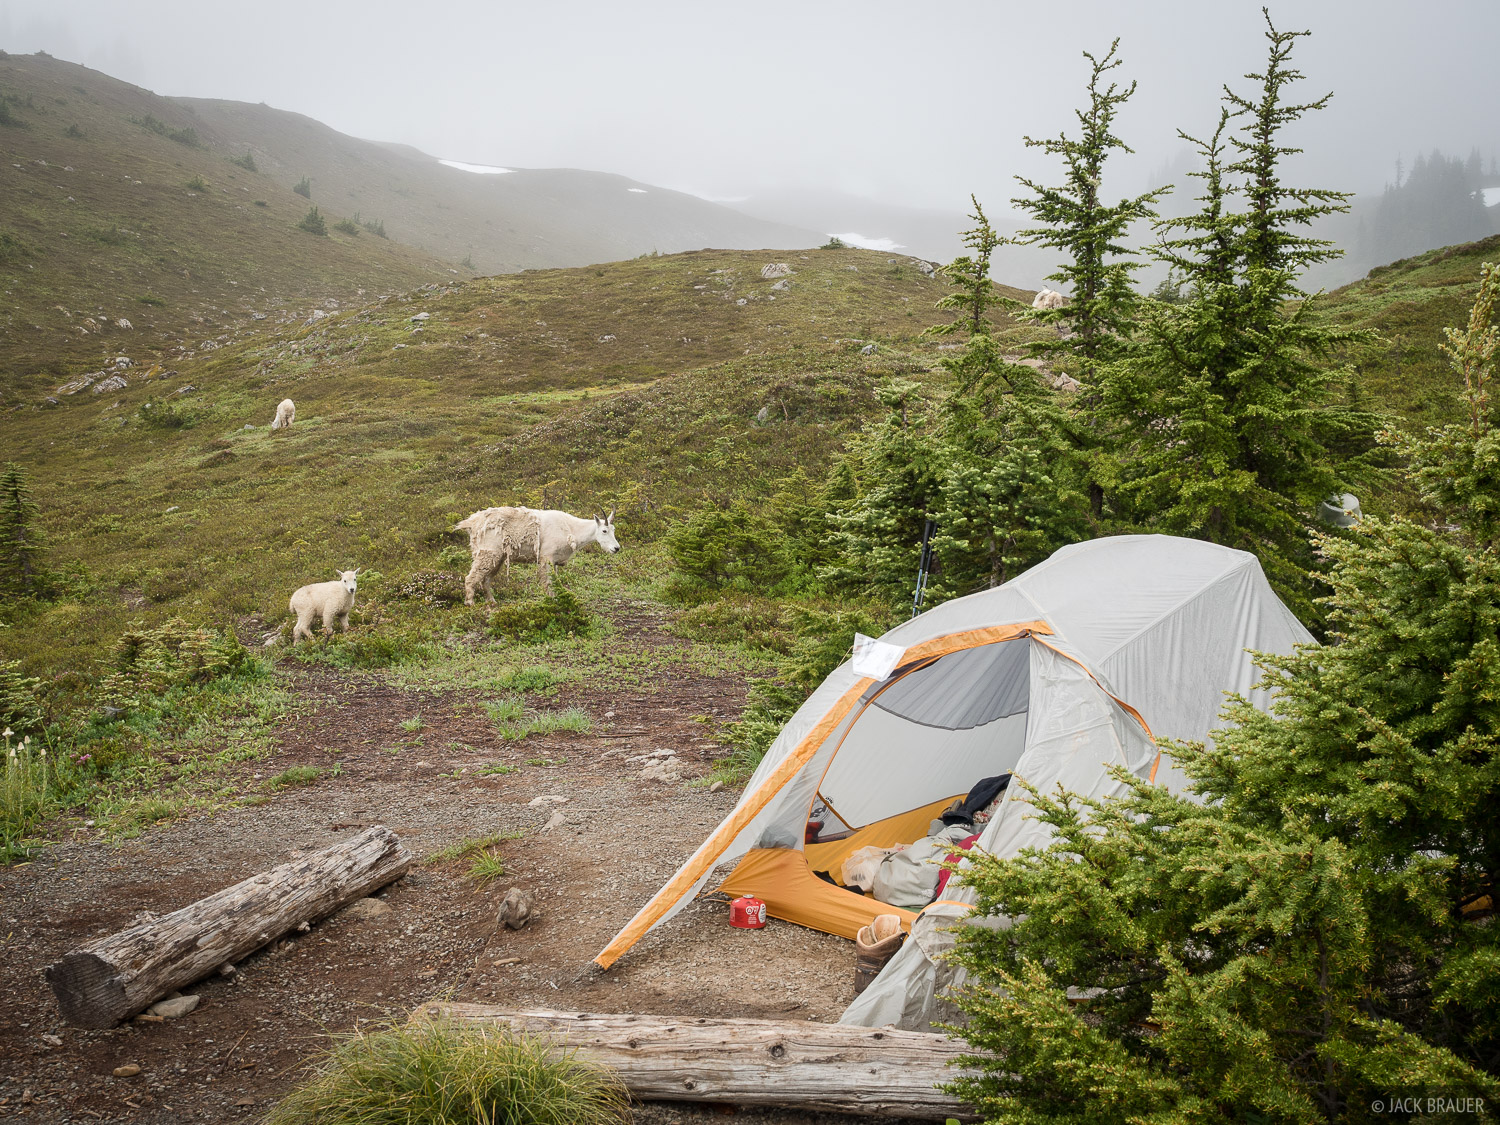 Mountain goats checking out or tent during our second (rainy) day at Heart Lake.